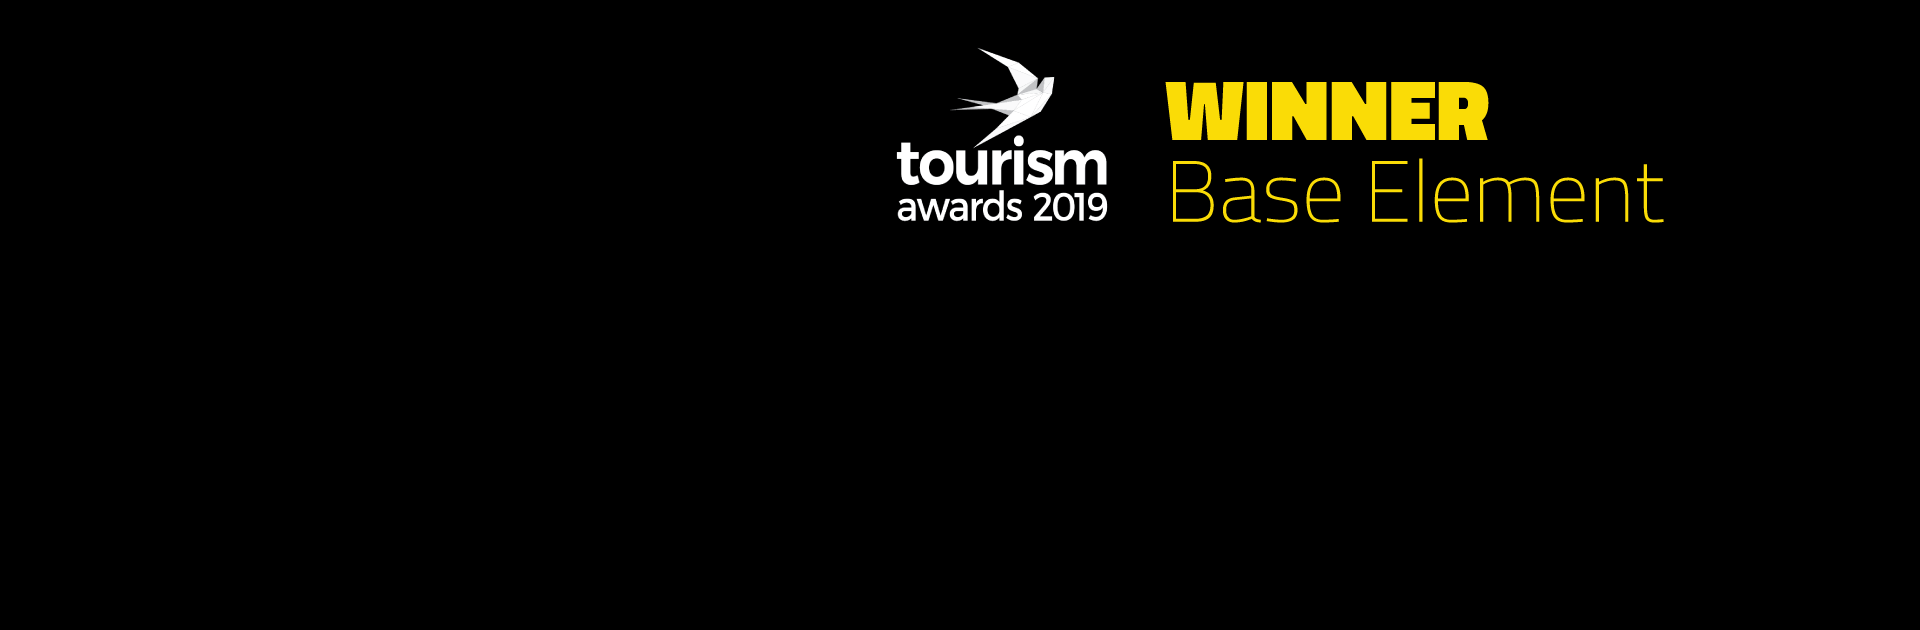 Base Element Wins Significant Distinction at Tourism Awards 2019